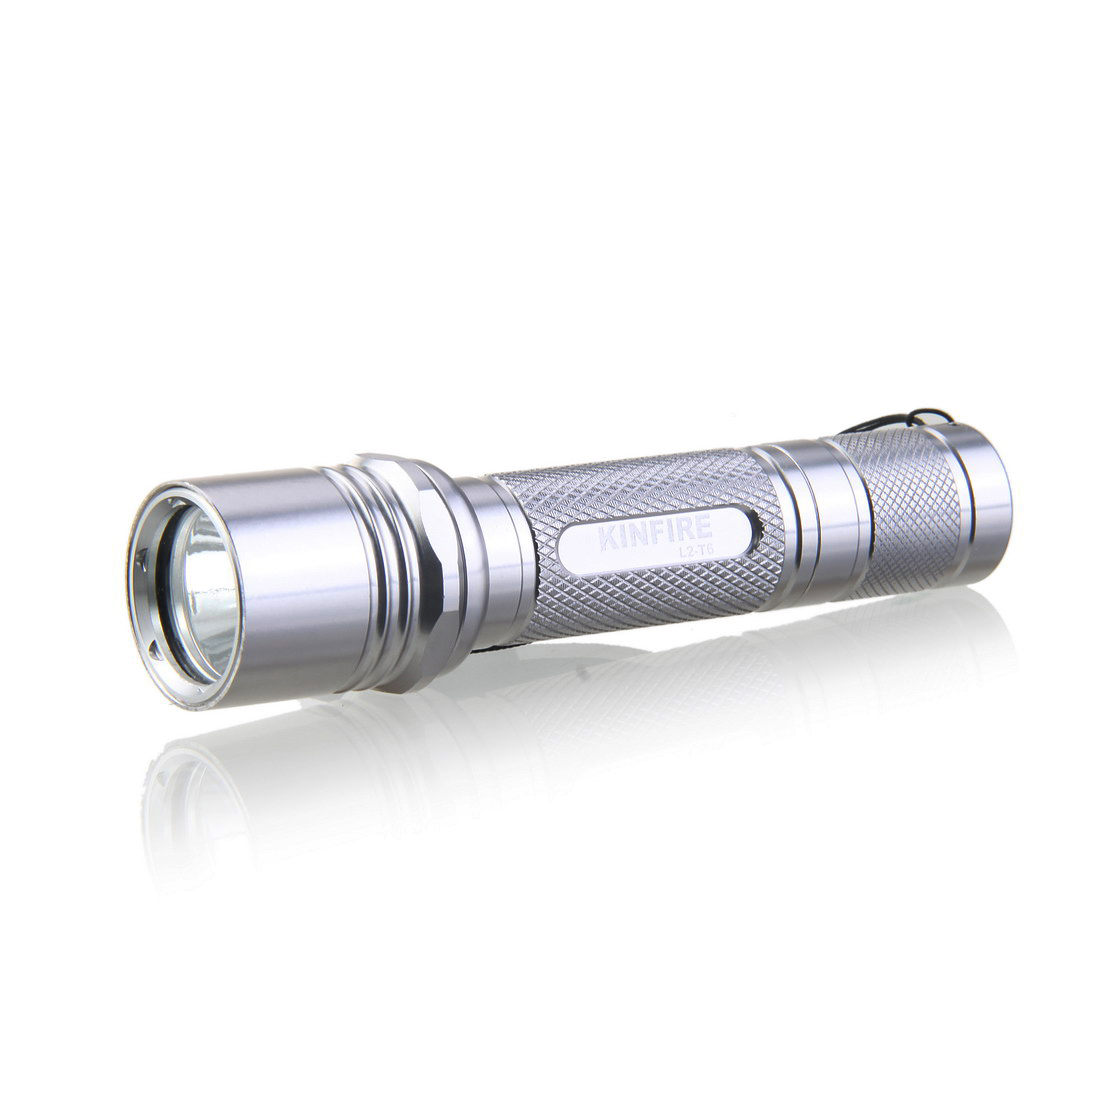 1000 lumen led flashlight,energizer led flashlight,waterproof led flashlight,streamlight led flashlight